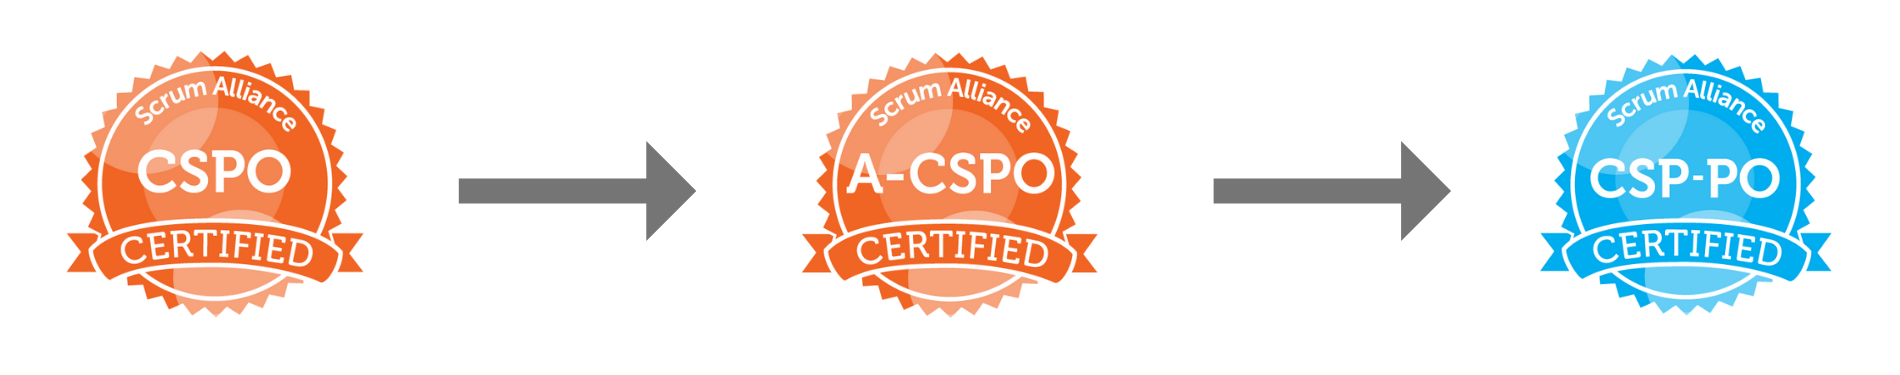 Advanced Certified Scrum Product Owner (A-CSPO) - Agil8